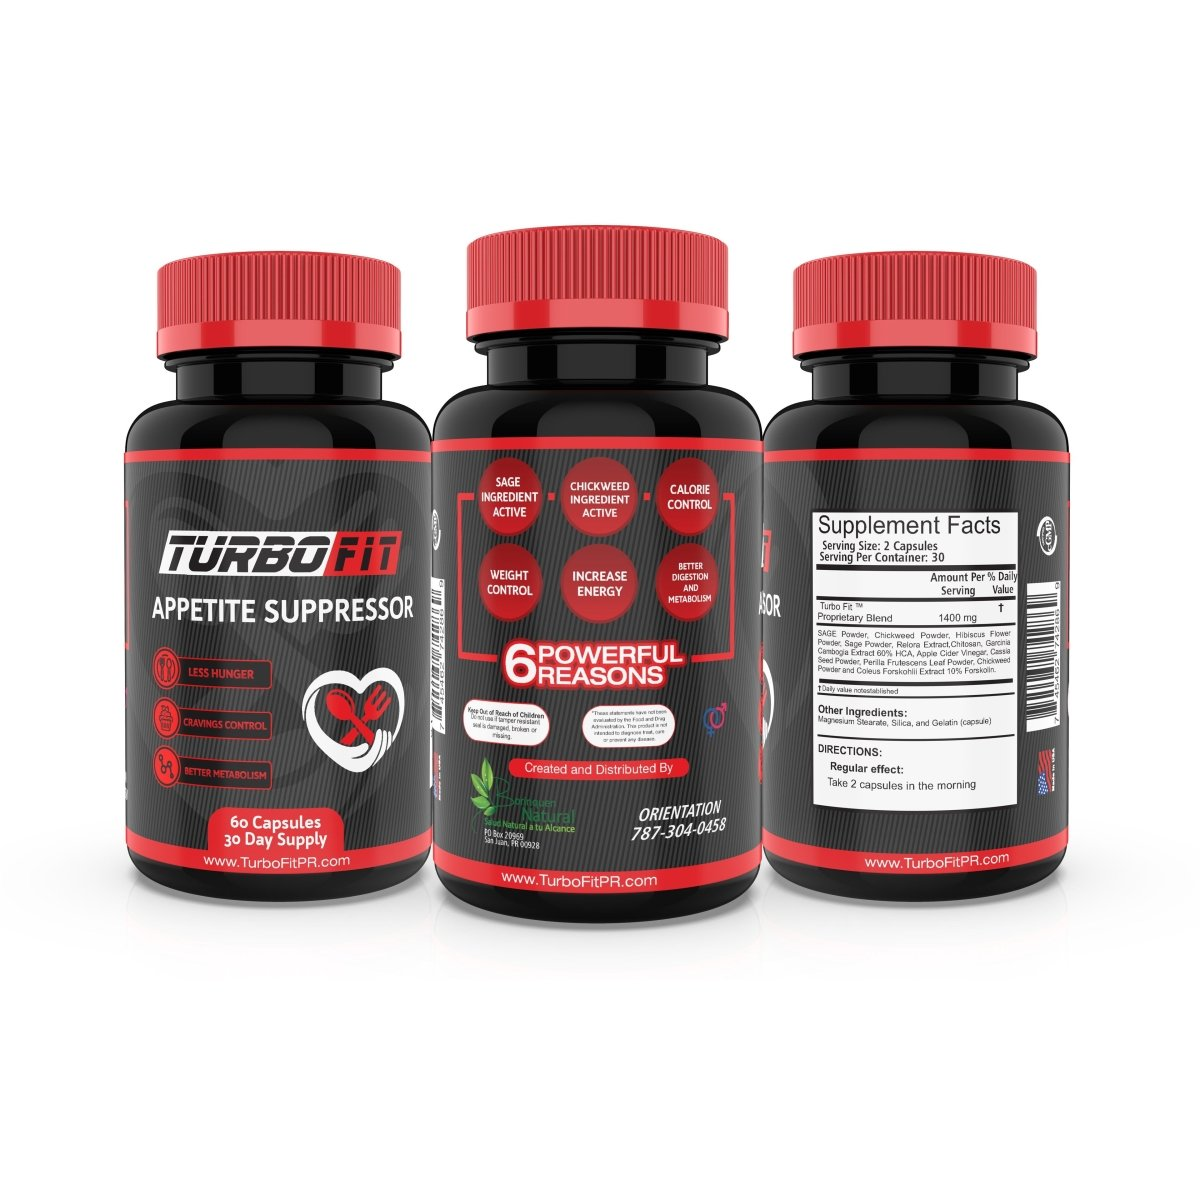 Turbo Fit - Appetite Suppressor - 60 Capsules